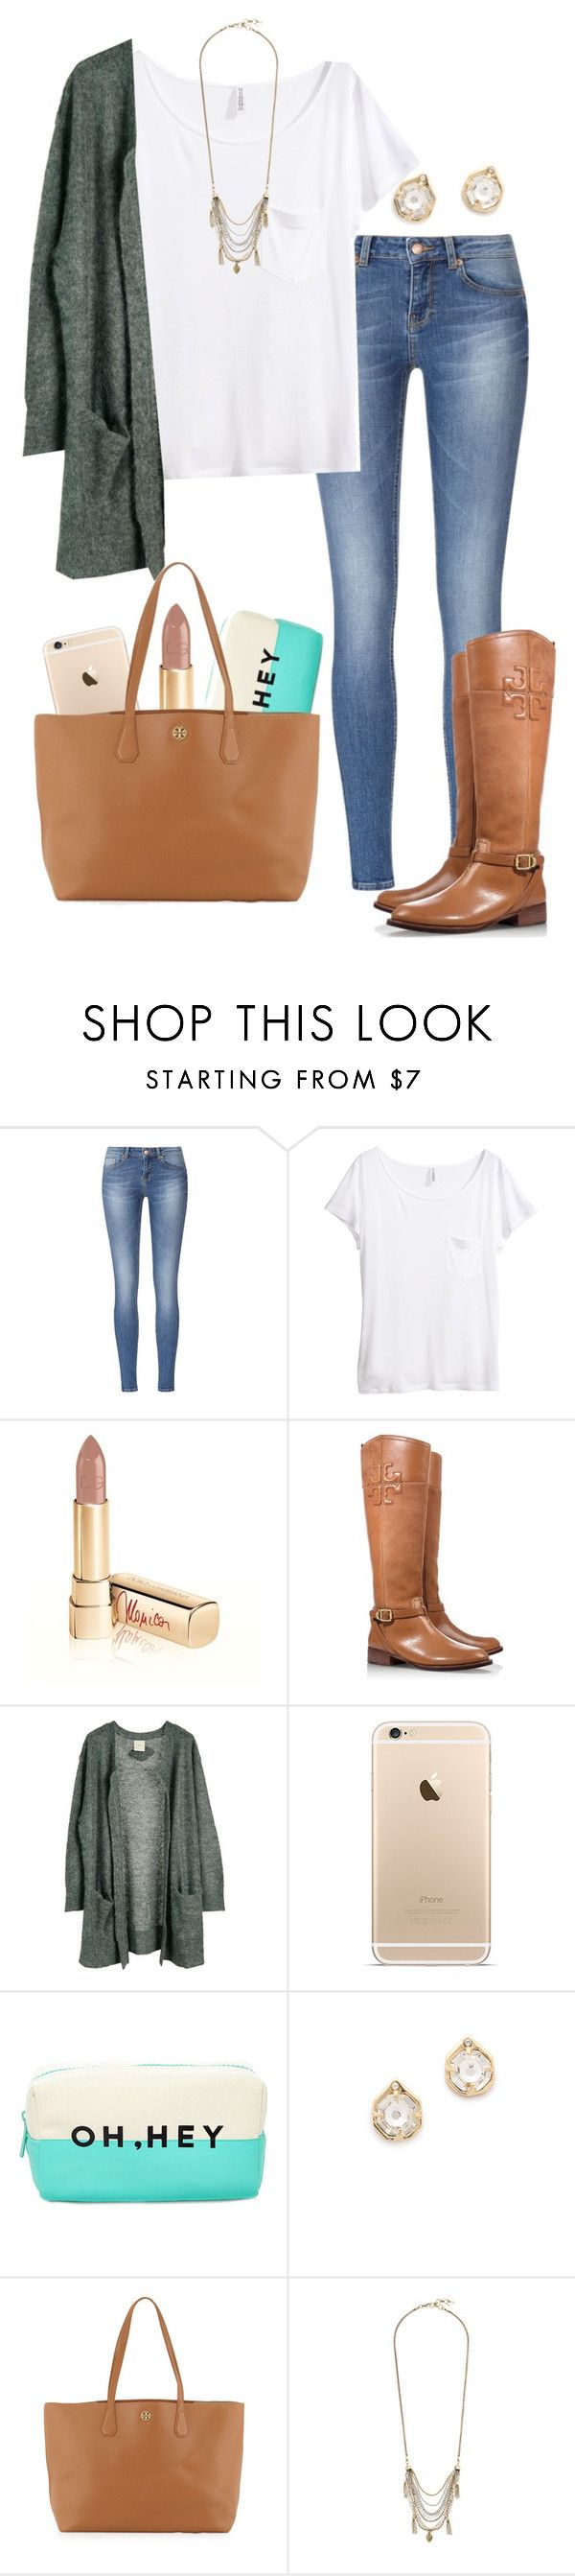 """They say she's in the class A team, stuck in her daydream "" by madelyn-abigail ❤ liked on Polyvore featuring H&M, Dolce&Gabbana, Tory Burch, Julie Fagerholt Heartmade, Forever 21, Carolyn Colby and Lucky Brand"